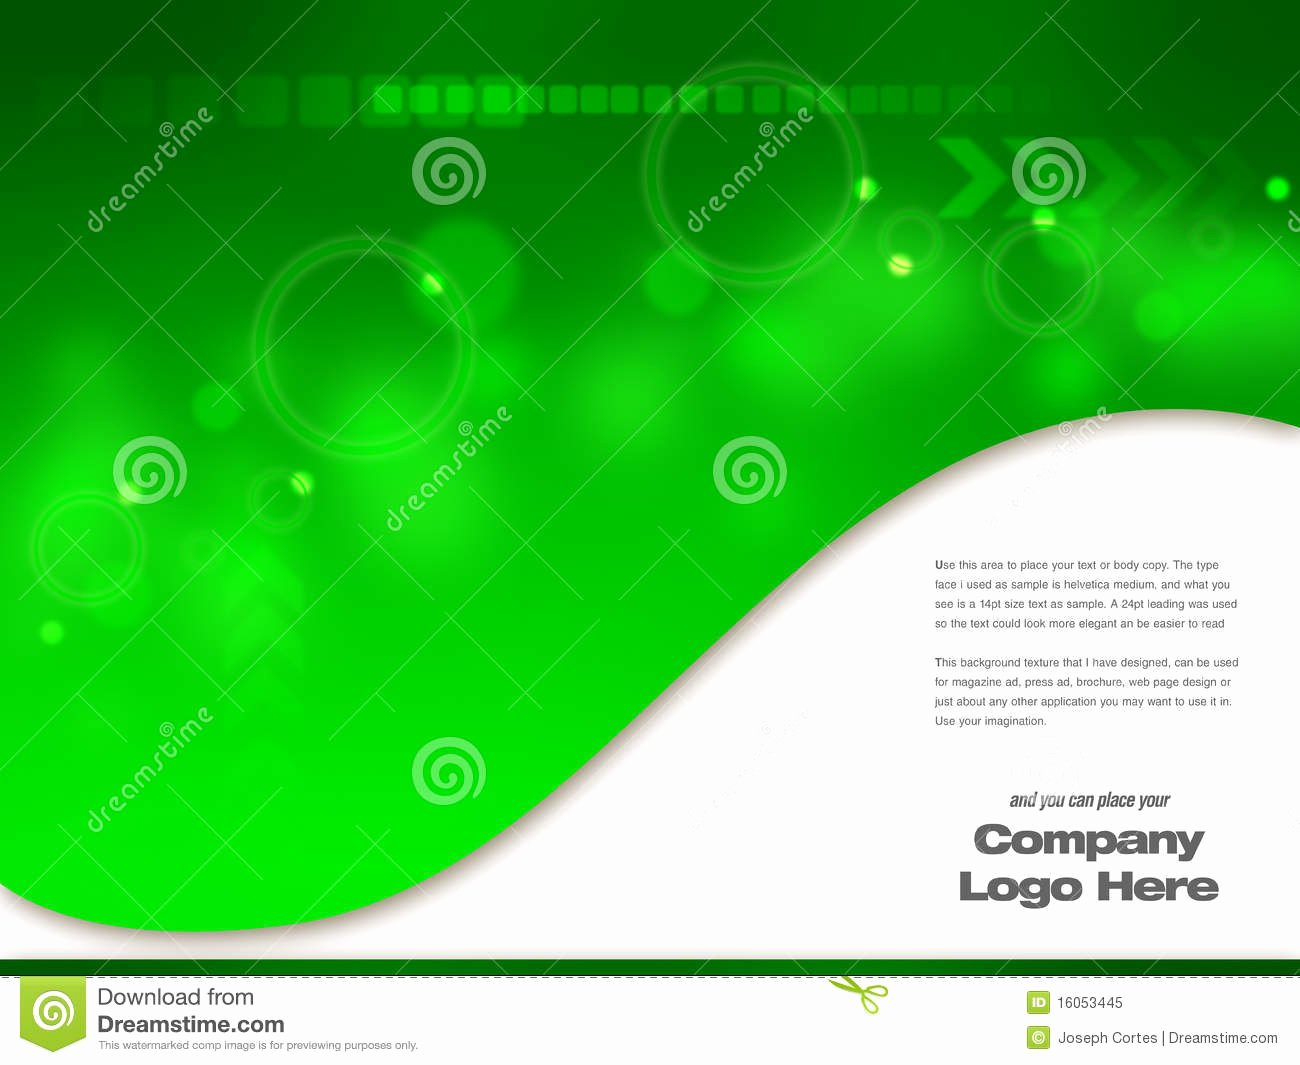 Free Graphic Design Template Best Of Graphic Design Template Royalty Free Stock Image